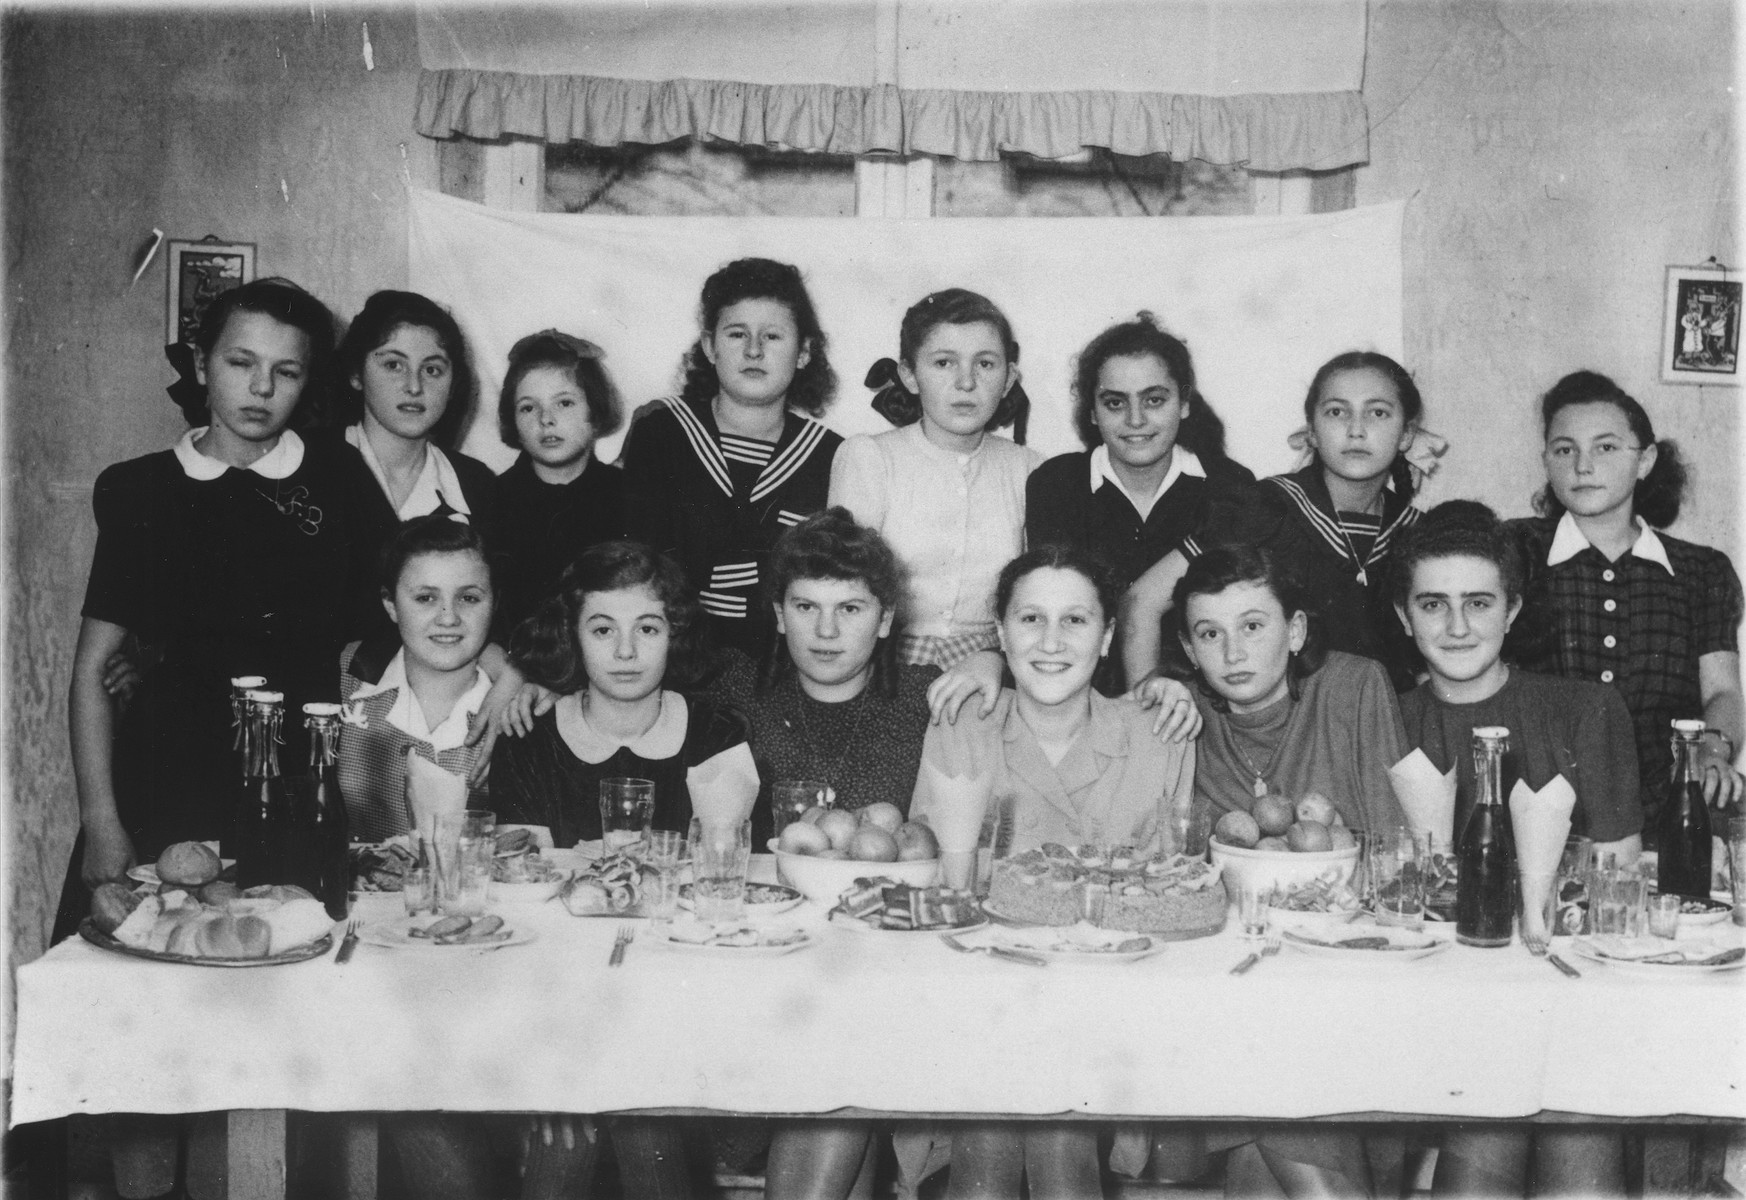 Group portrait of Jewish girls at Ida Wallach's birthday party in the Ulm displaced persons camp.  Among those pictured are Rochela Gellman, Surele Greenblat, Ida Wullach, Regina Yablonska, Lila Rajs, and Ruzia and Lila Rozen.